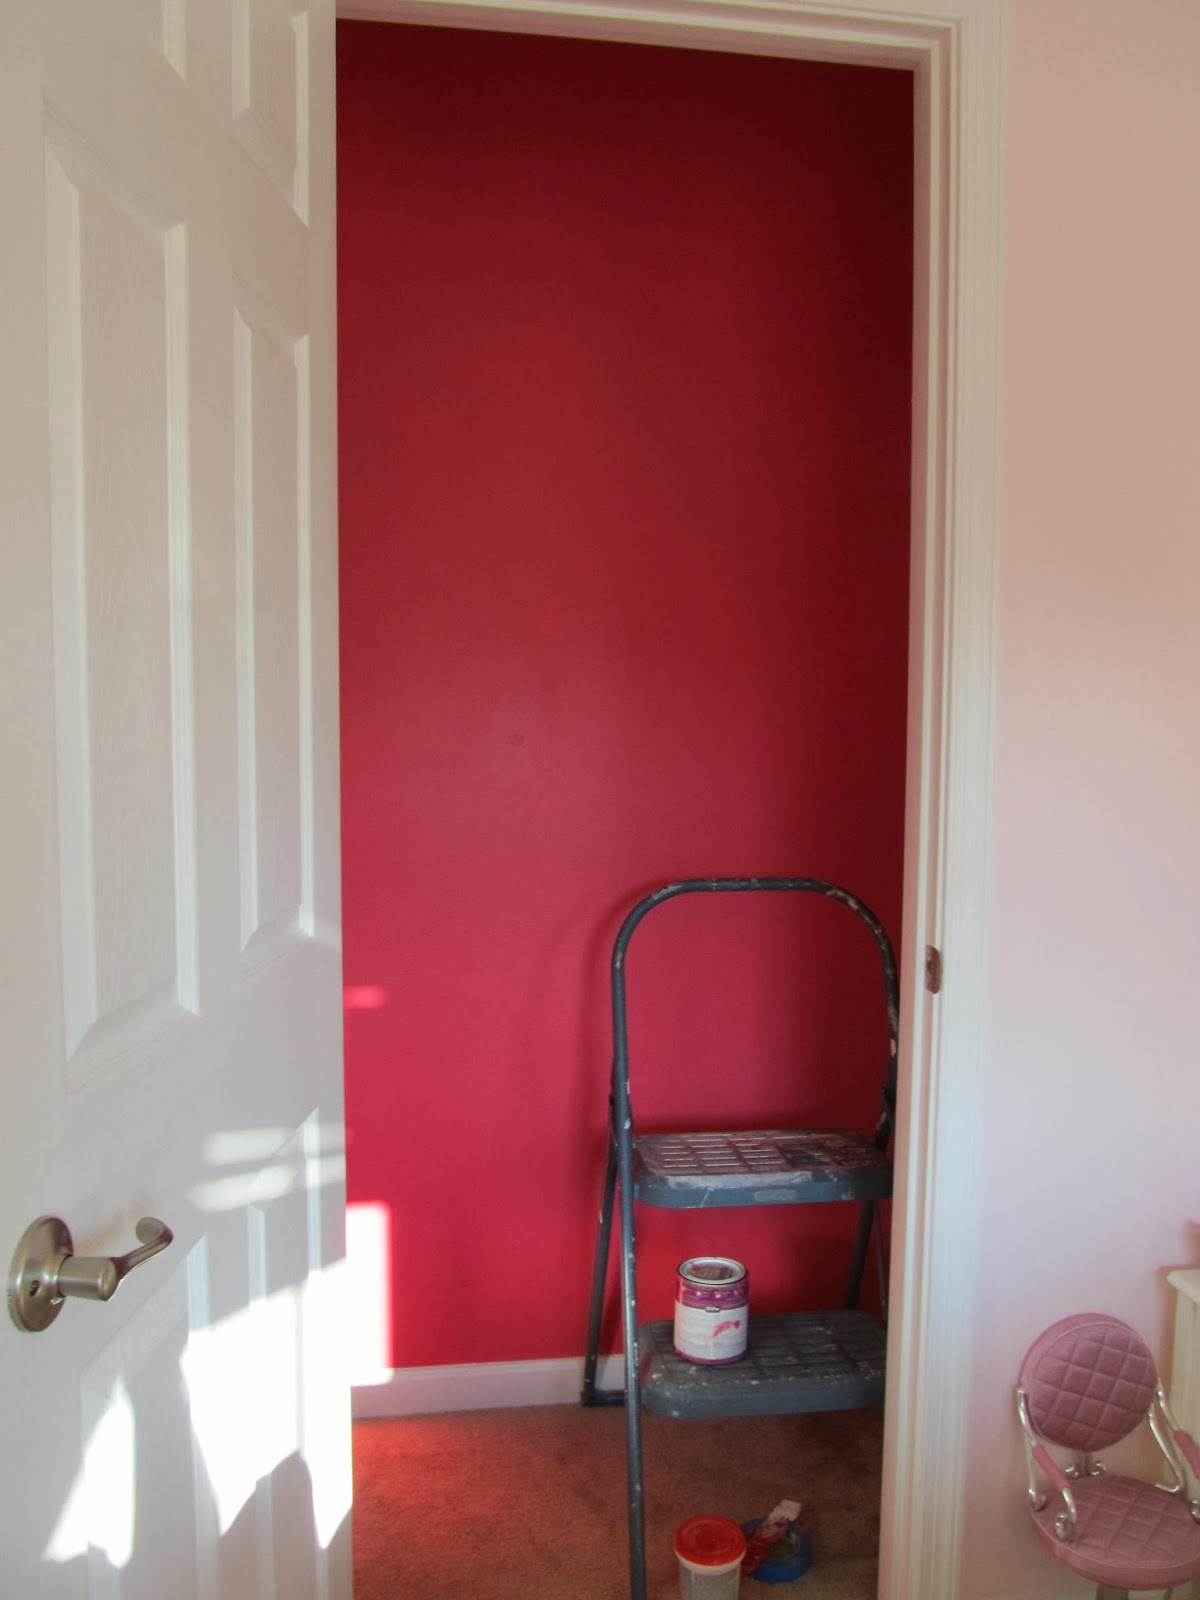 *Note: Save Yourself The Hassle And Only Paint The Back Wall Of The Closet.  Donu0027t Bother With The Sides, And Certainly Not The Inside Wall Which Is  Never ...